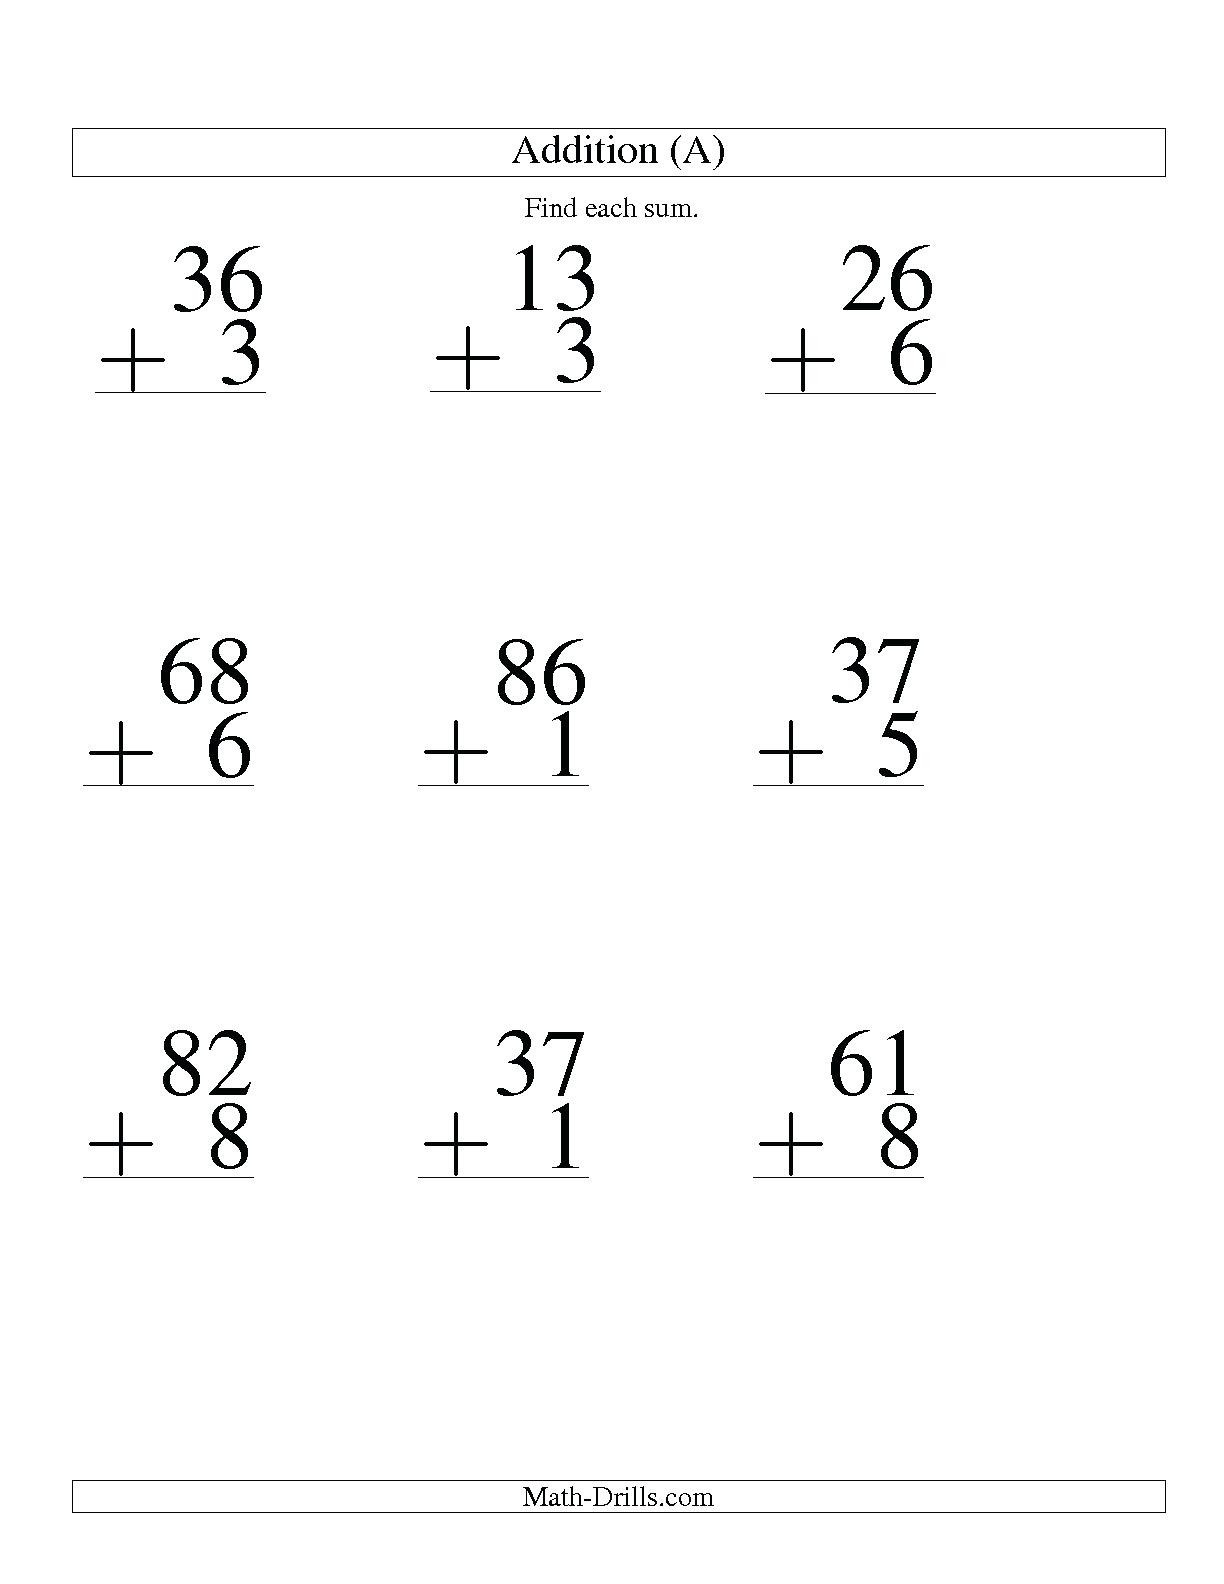 Repeated Addition Worksheets 2nd Grade Math Worksheet 54 Remarkable Addition Worksheets Grade 3